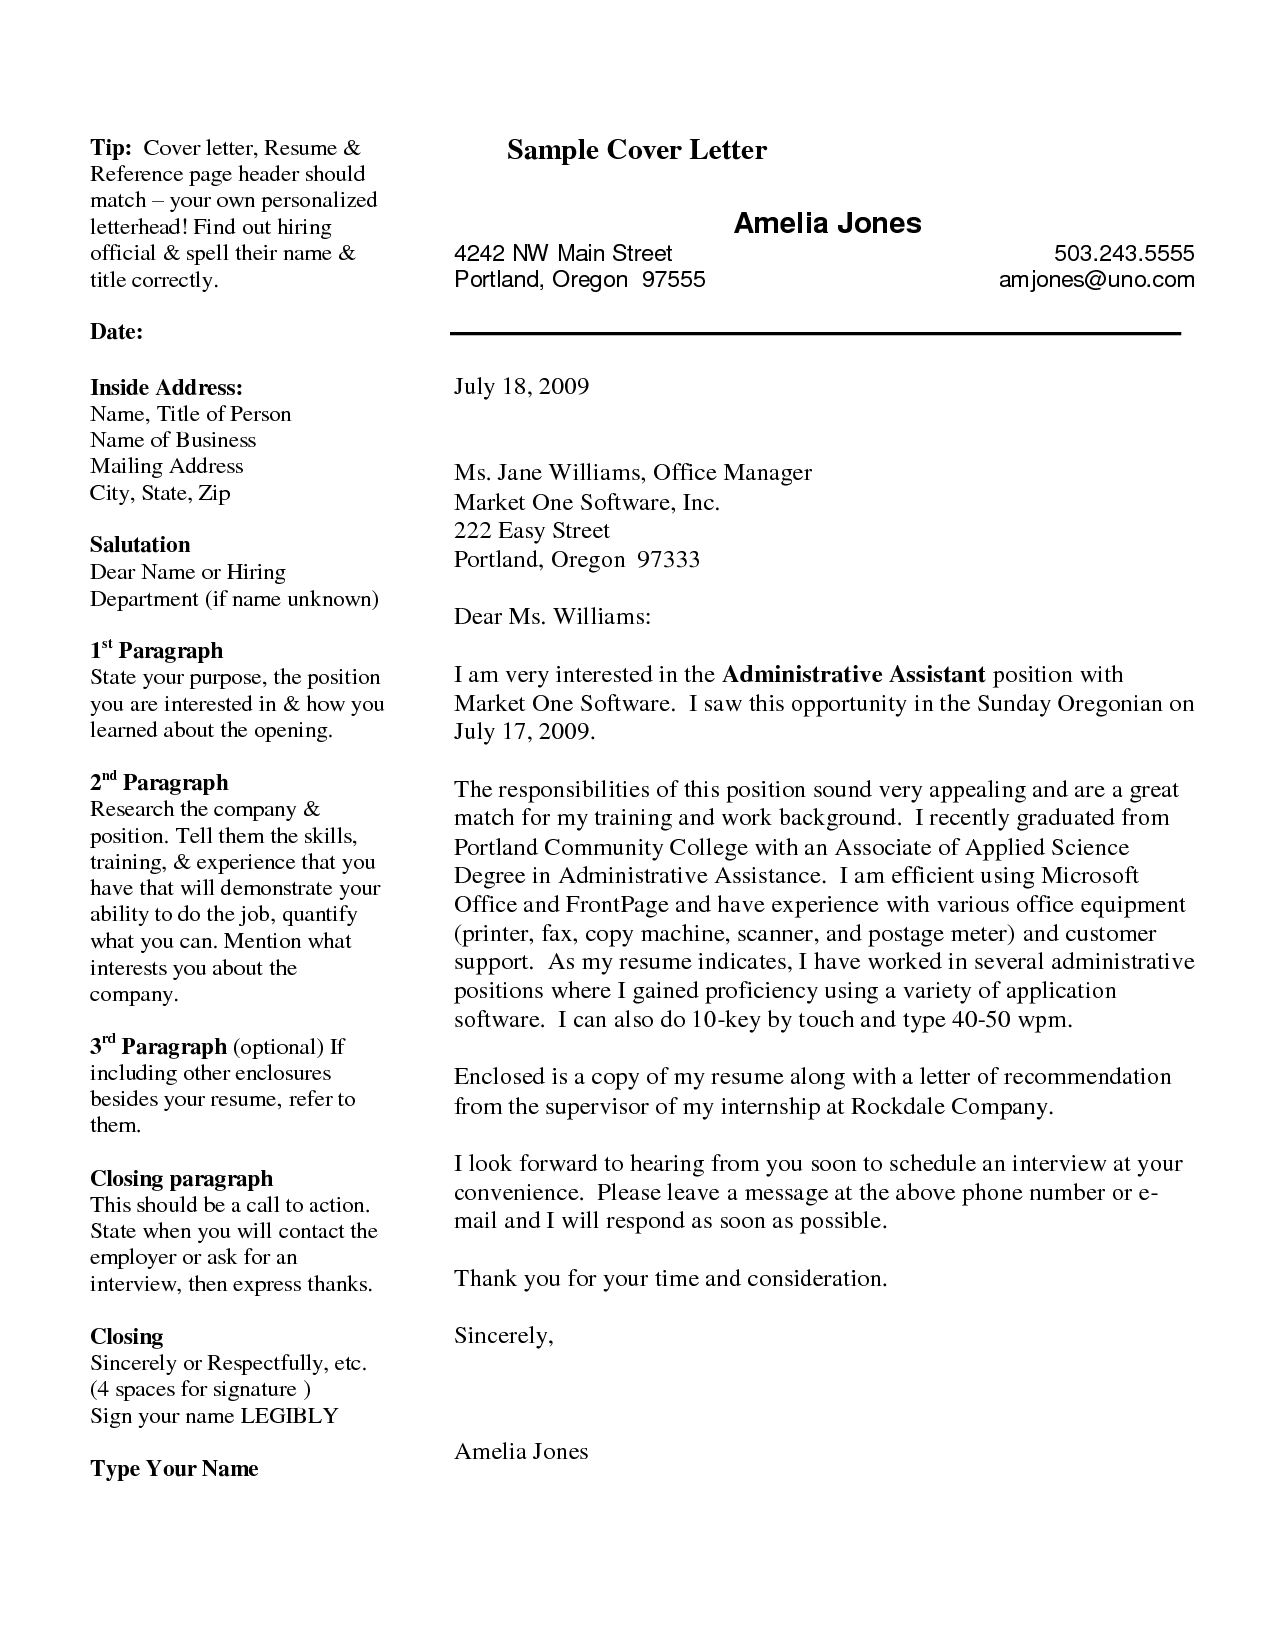 Professional Resume Cover Letter SamplesProfessional Resume Cover Letter  Samples Professional Resume Cover Letter Samples,how  Microsoft Word Cover Letter Template